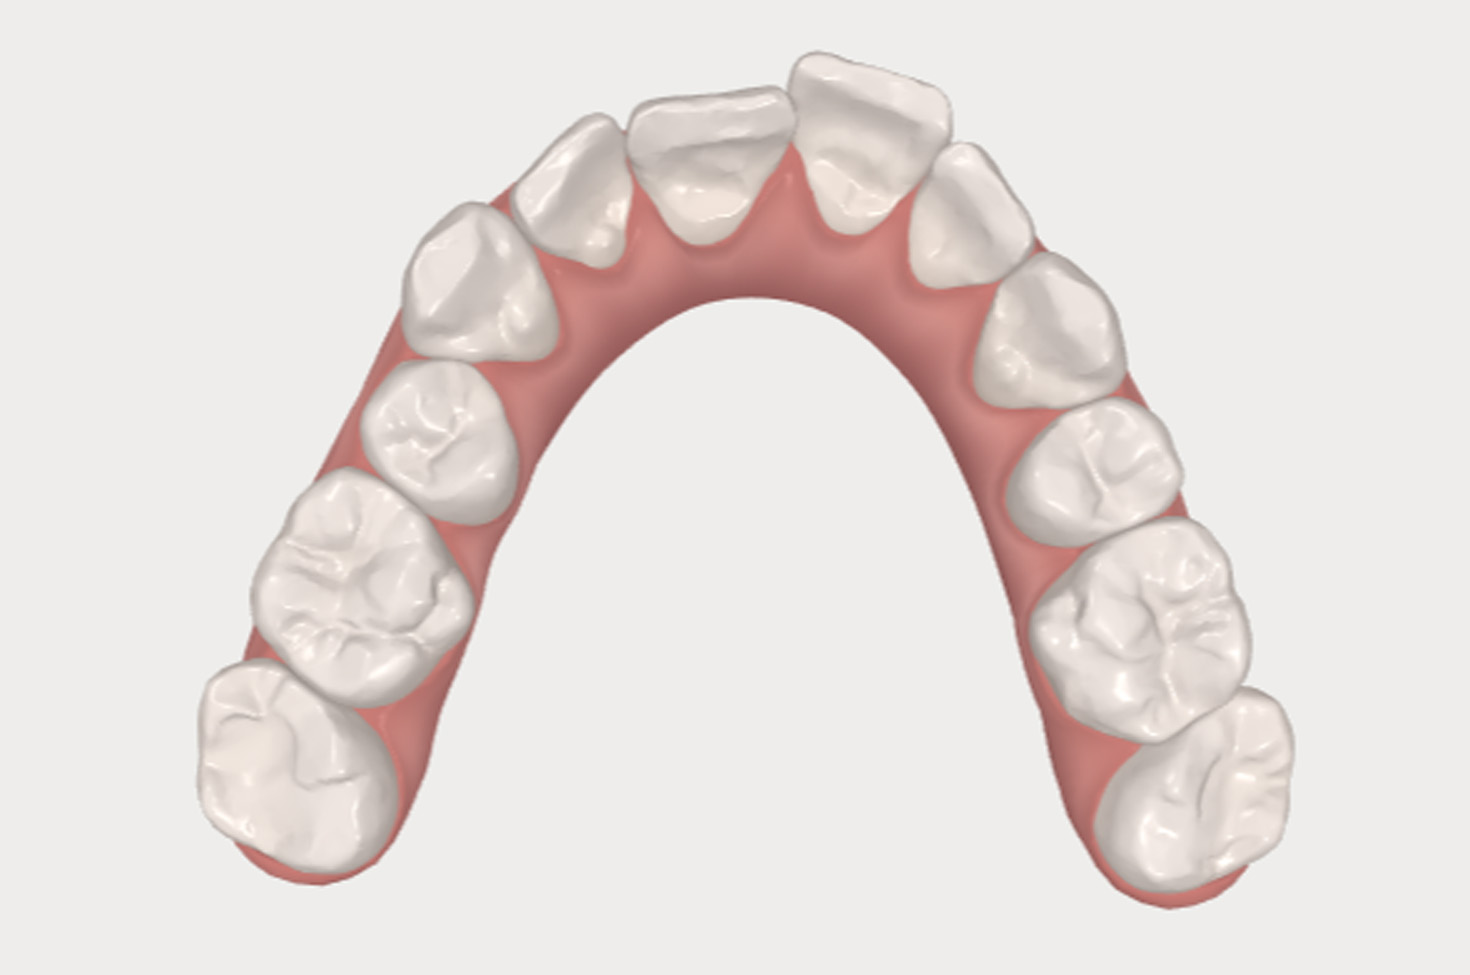 Simulation images of before and after teeth straightening